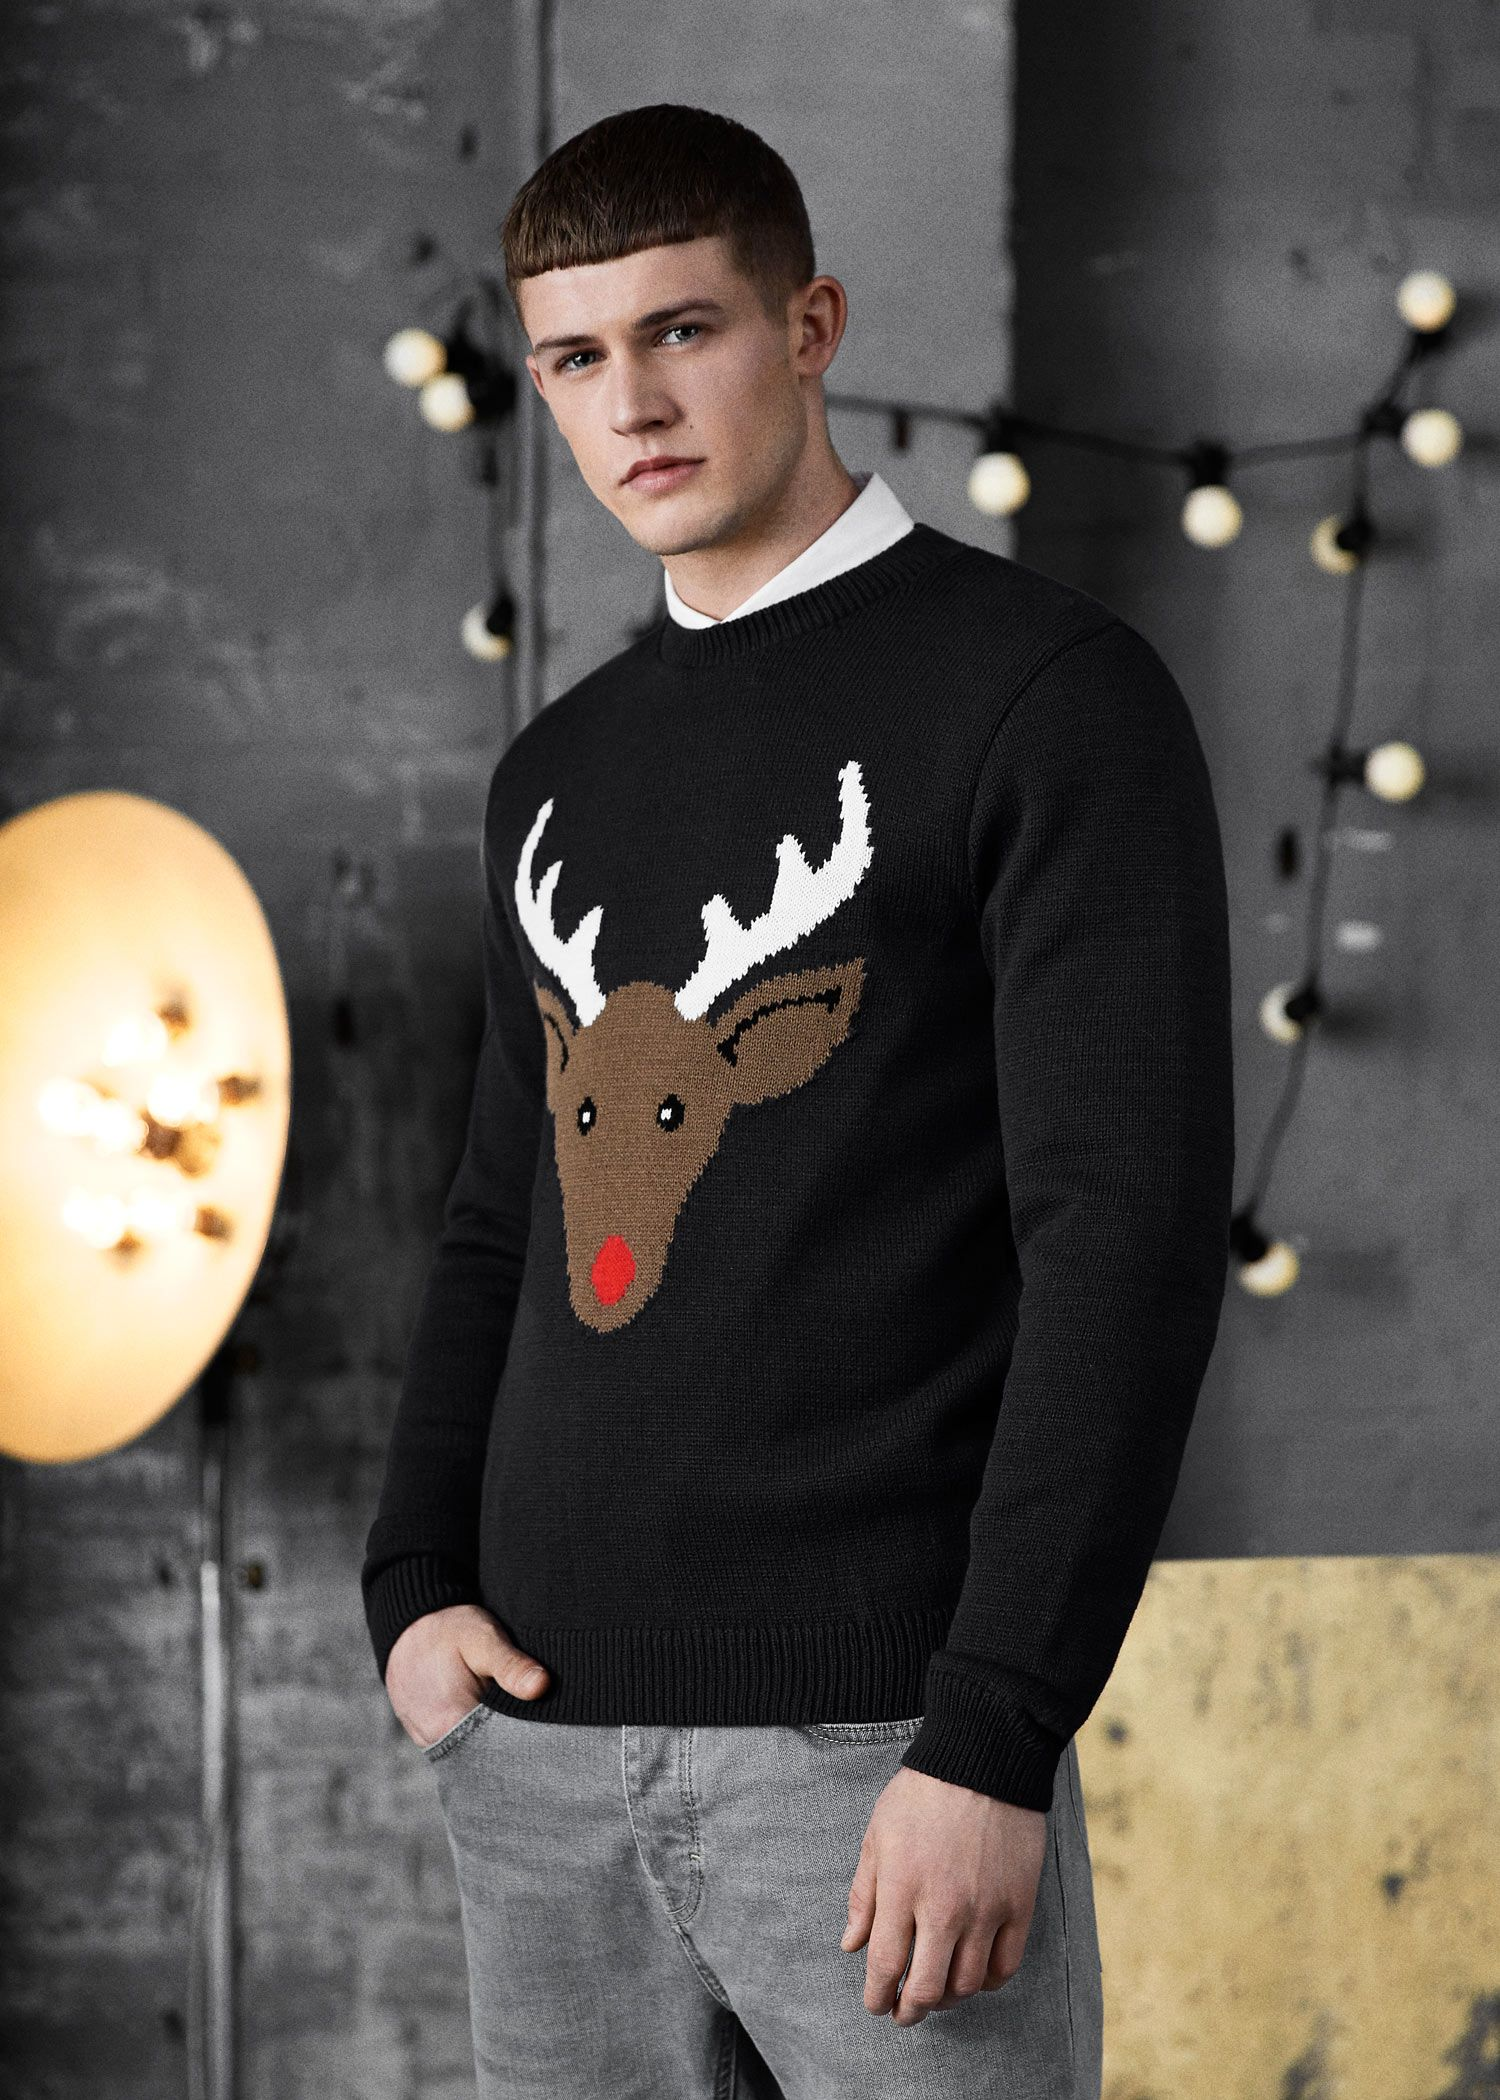 Christmas Shop - Topman Christmas Campaign - Still Life Photography From  Secret Santa gifts to Christmas jumpers to unusual gift ideas for men, ...